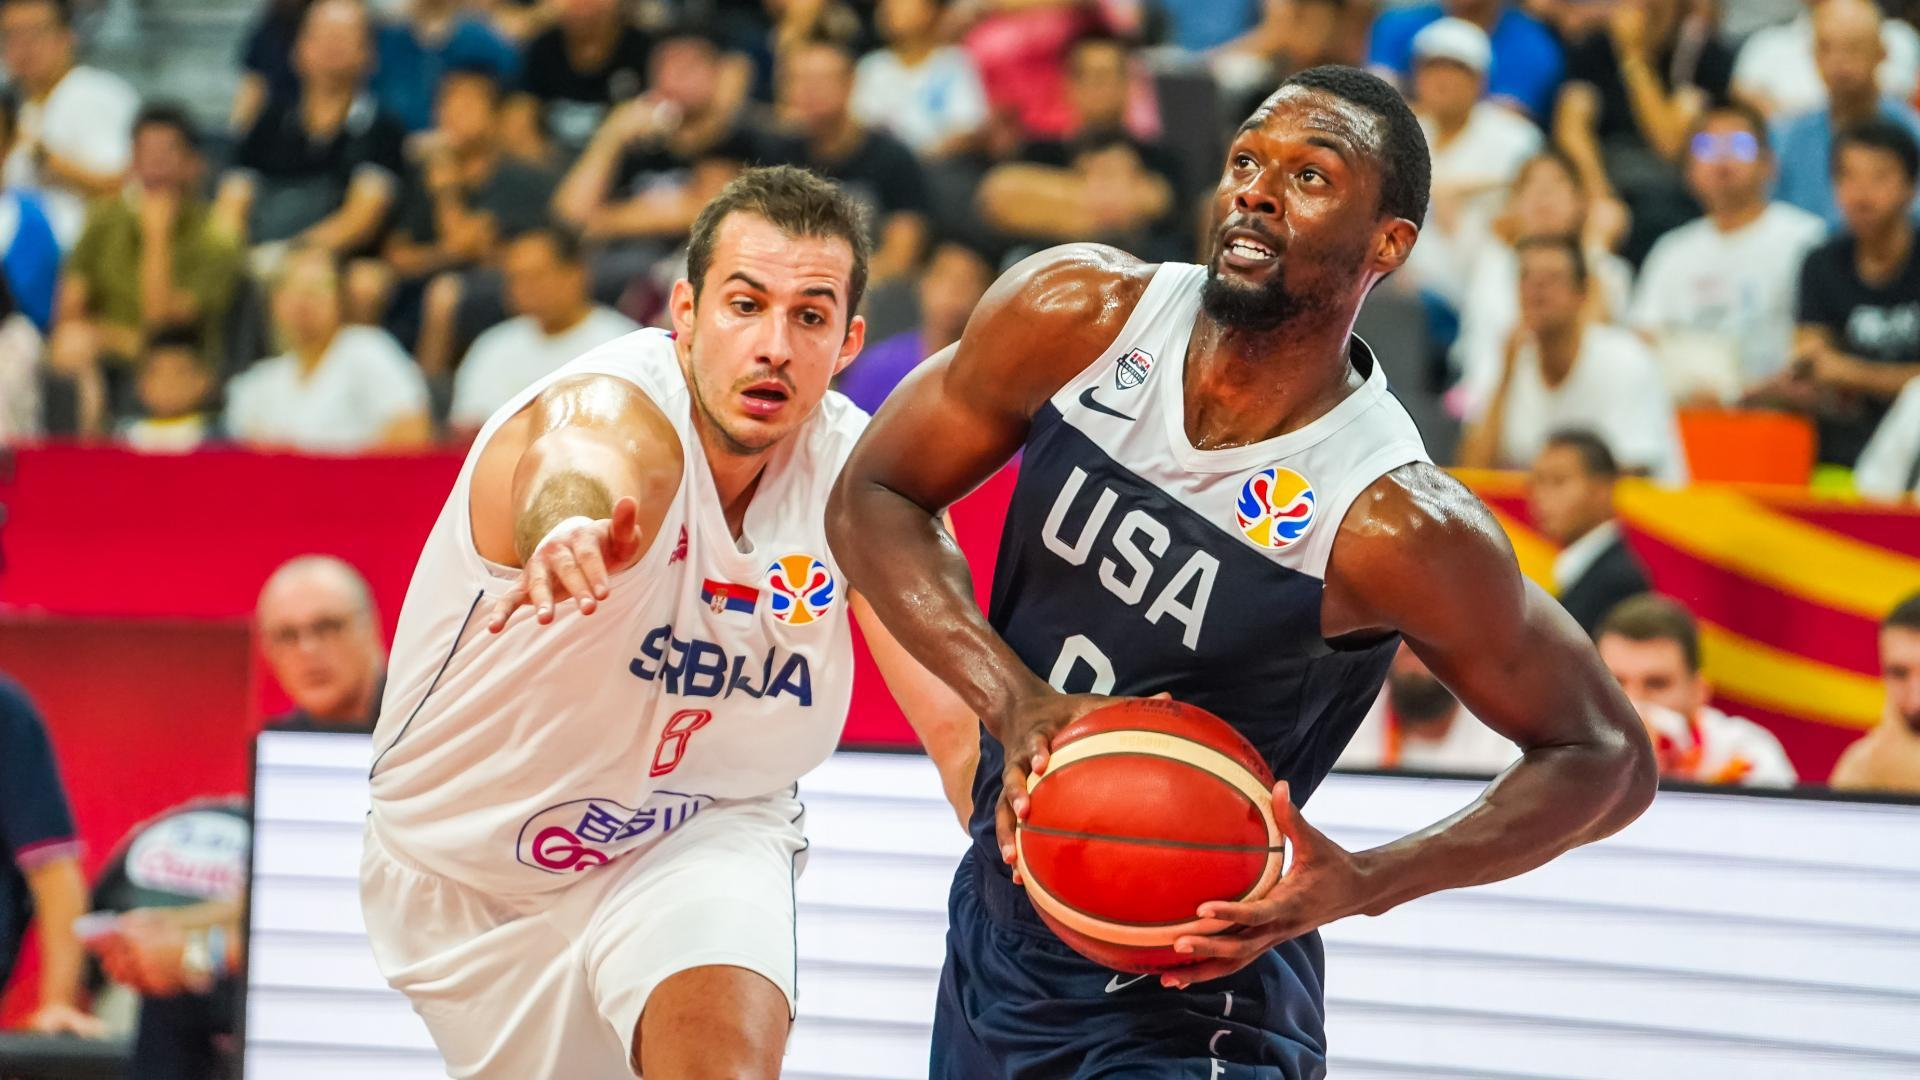 Serbia steamrolls Team USA 32-7 in first quarter, goes on to win 94-89 in FIBA World Cup